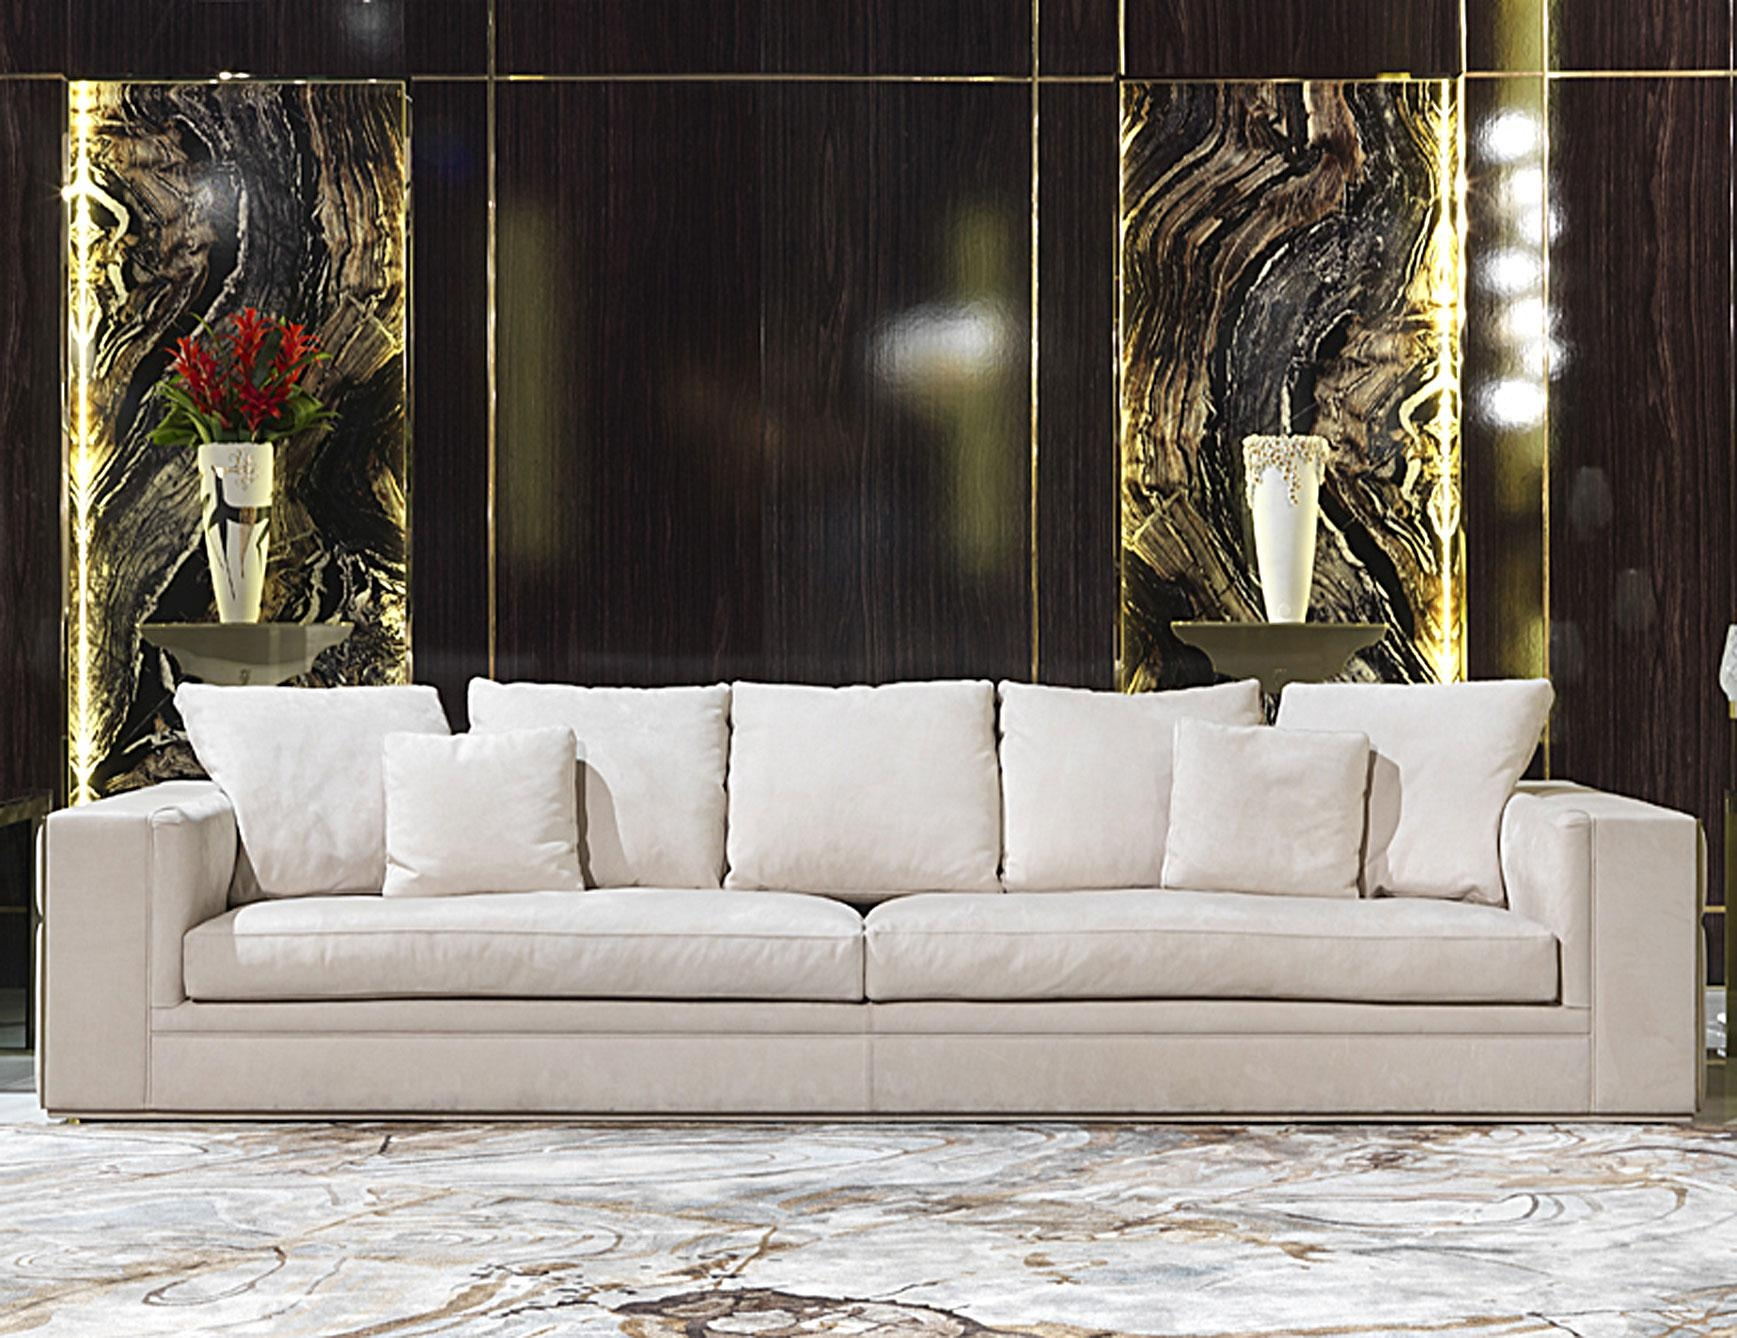 Italian Designer Luxury High End Sofas & Sofa Chairs: Nella Vetrina With Regard To Sofas And Chairs (View 16 of 20)